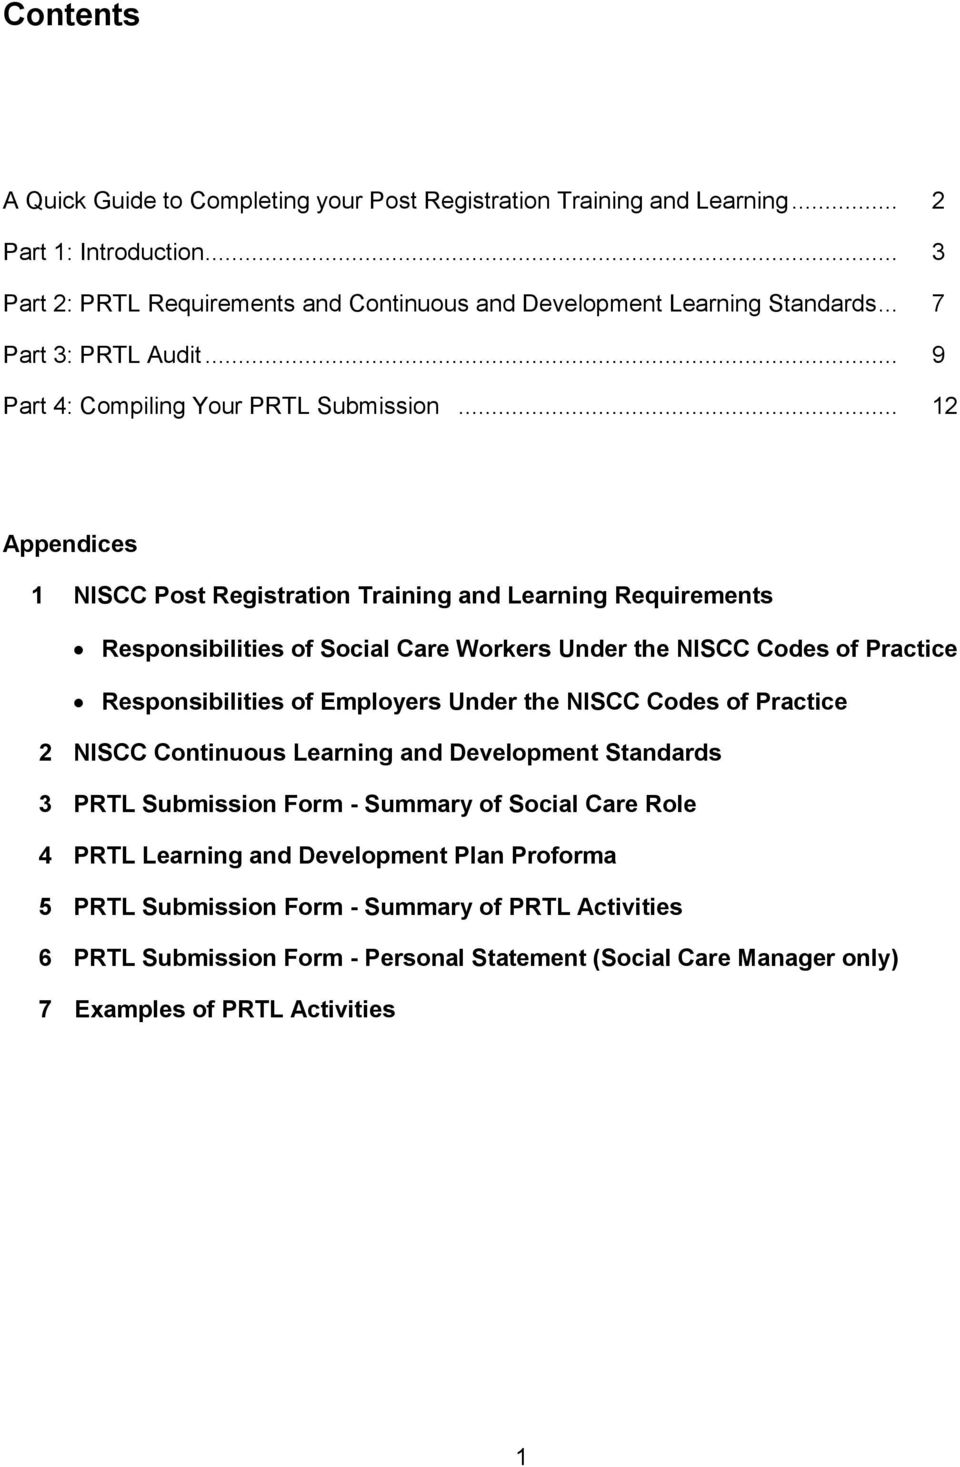 .. 12 Appendices 1 NISCC Post Registration Training and Learning Requirements Responsibilities of Social Care Workers Under the NISCC Codes of Practice Responsibilities of Employers Under the